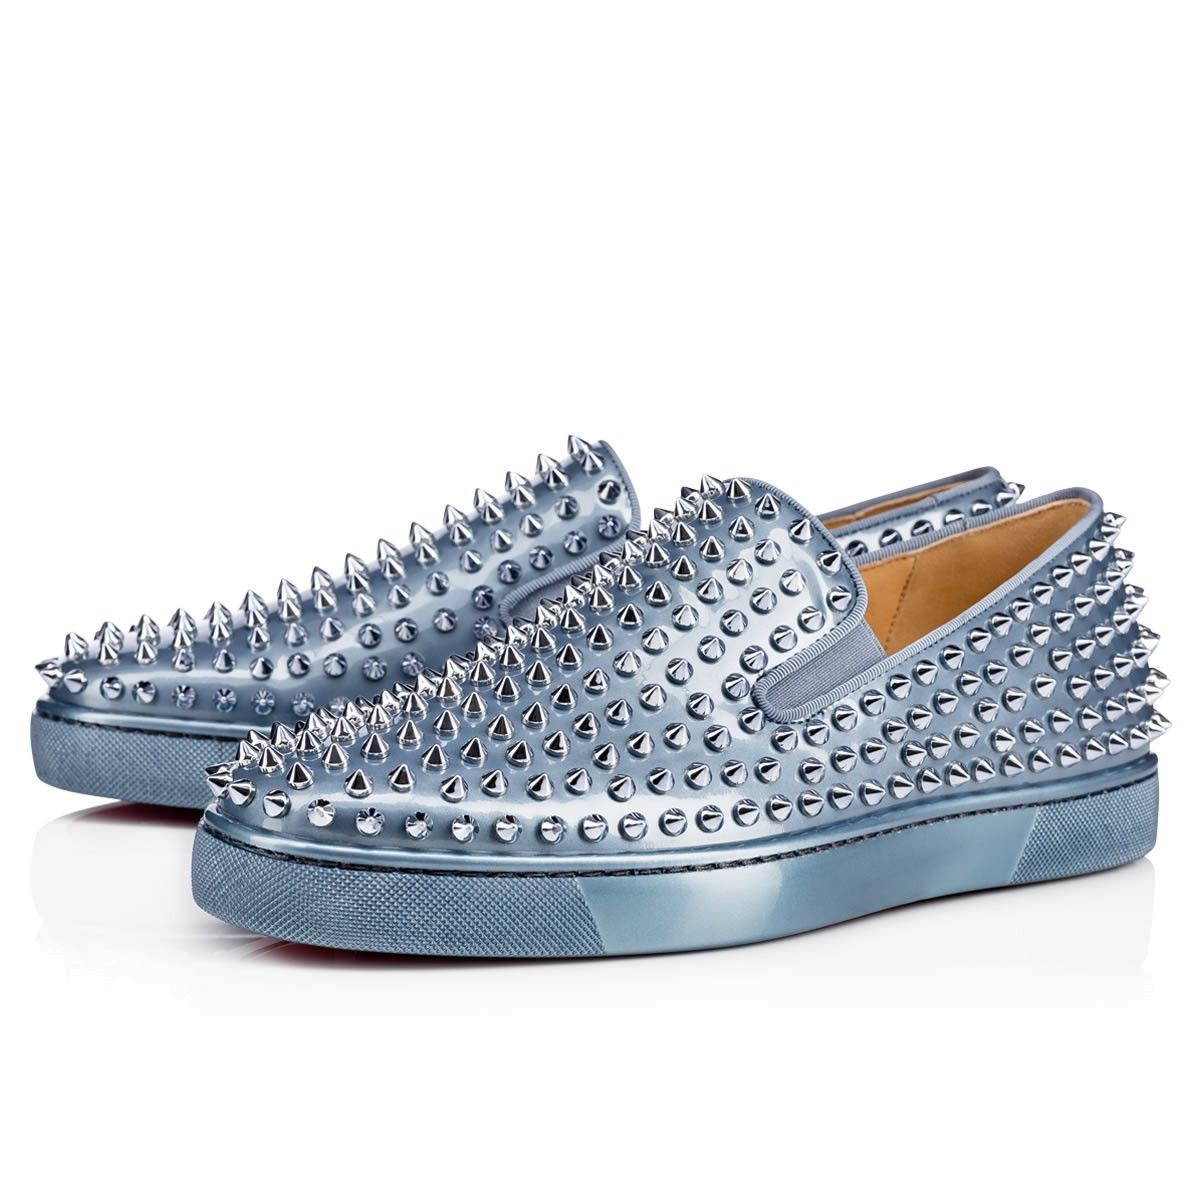 26510adaf3e authentic christian louboutin roller boat metal patent poseidon patent  calfskin men shoes christian louboutin. christianlouboutin